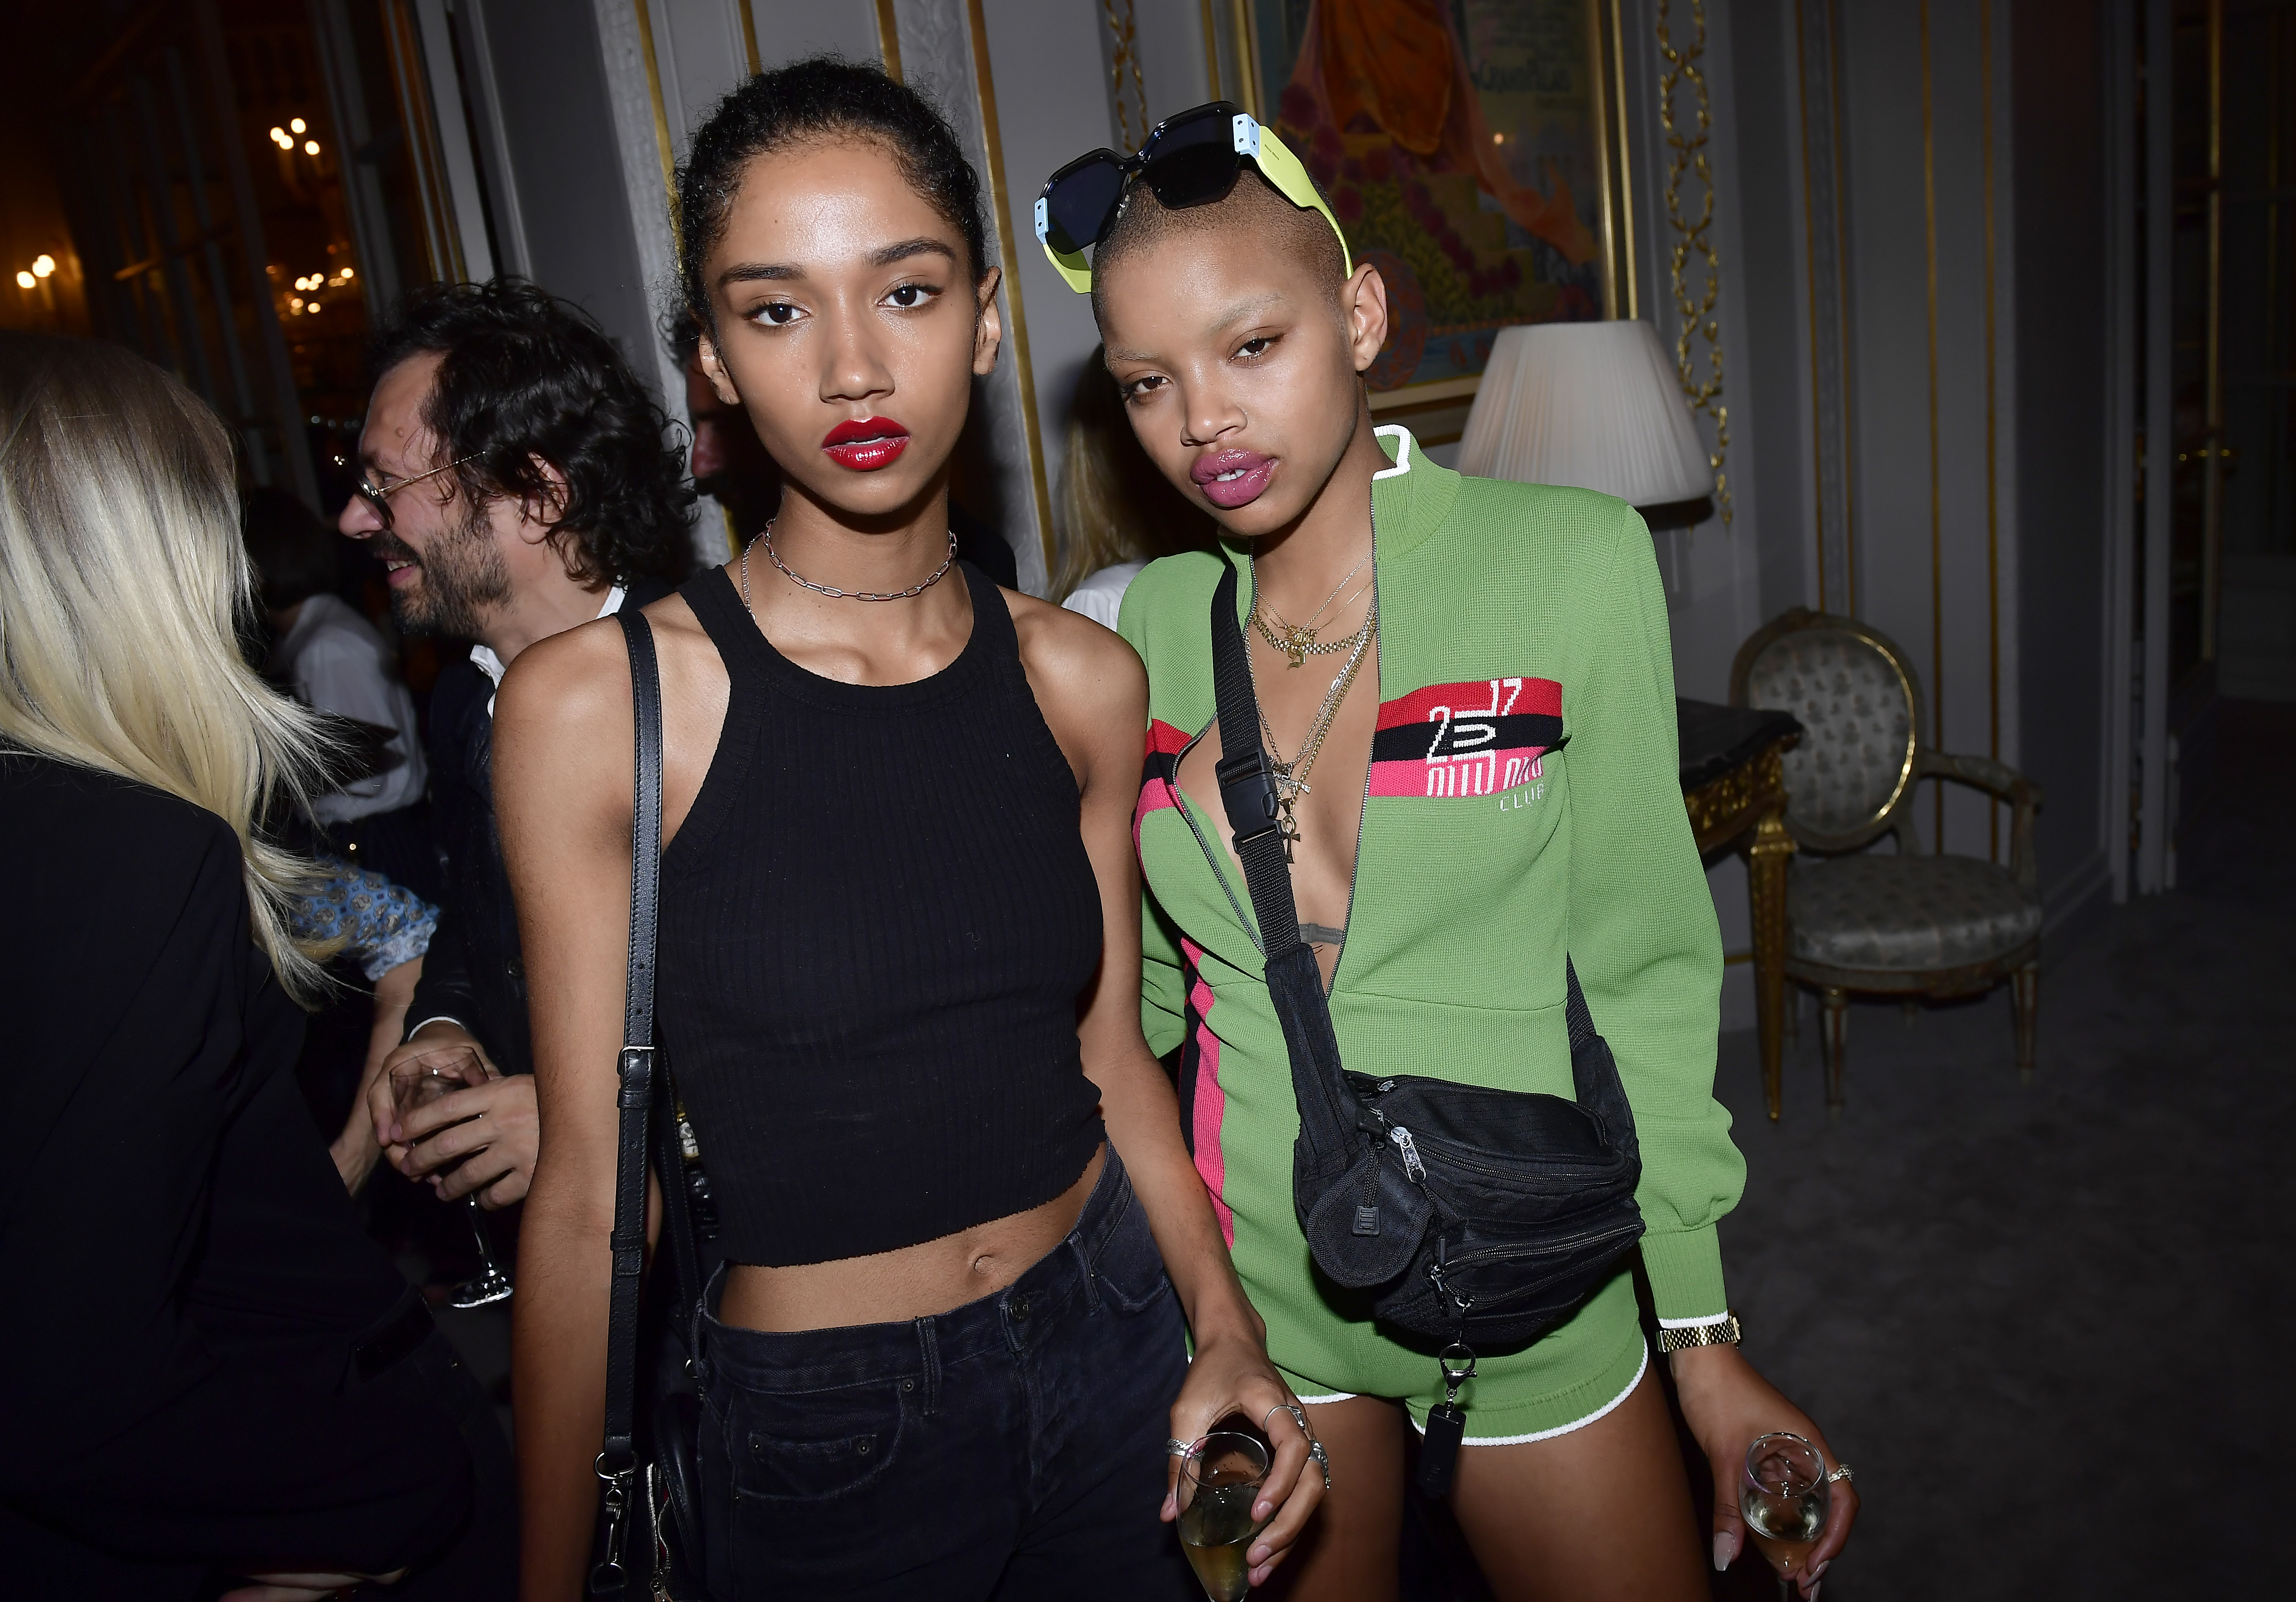 PARIS, FRANCE - JULY 02: Slick Woods (R) and a guest attend Miu Miu Cruise Collection cocktail & party as part of Haute Couture Paris Fashion Week on July 2, 2017 in Paris, France.  (Photo by Victor Boyko/Getty Images for Miu Miu) *** Local Caption *** Slick Woods